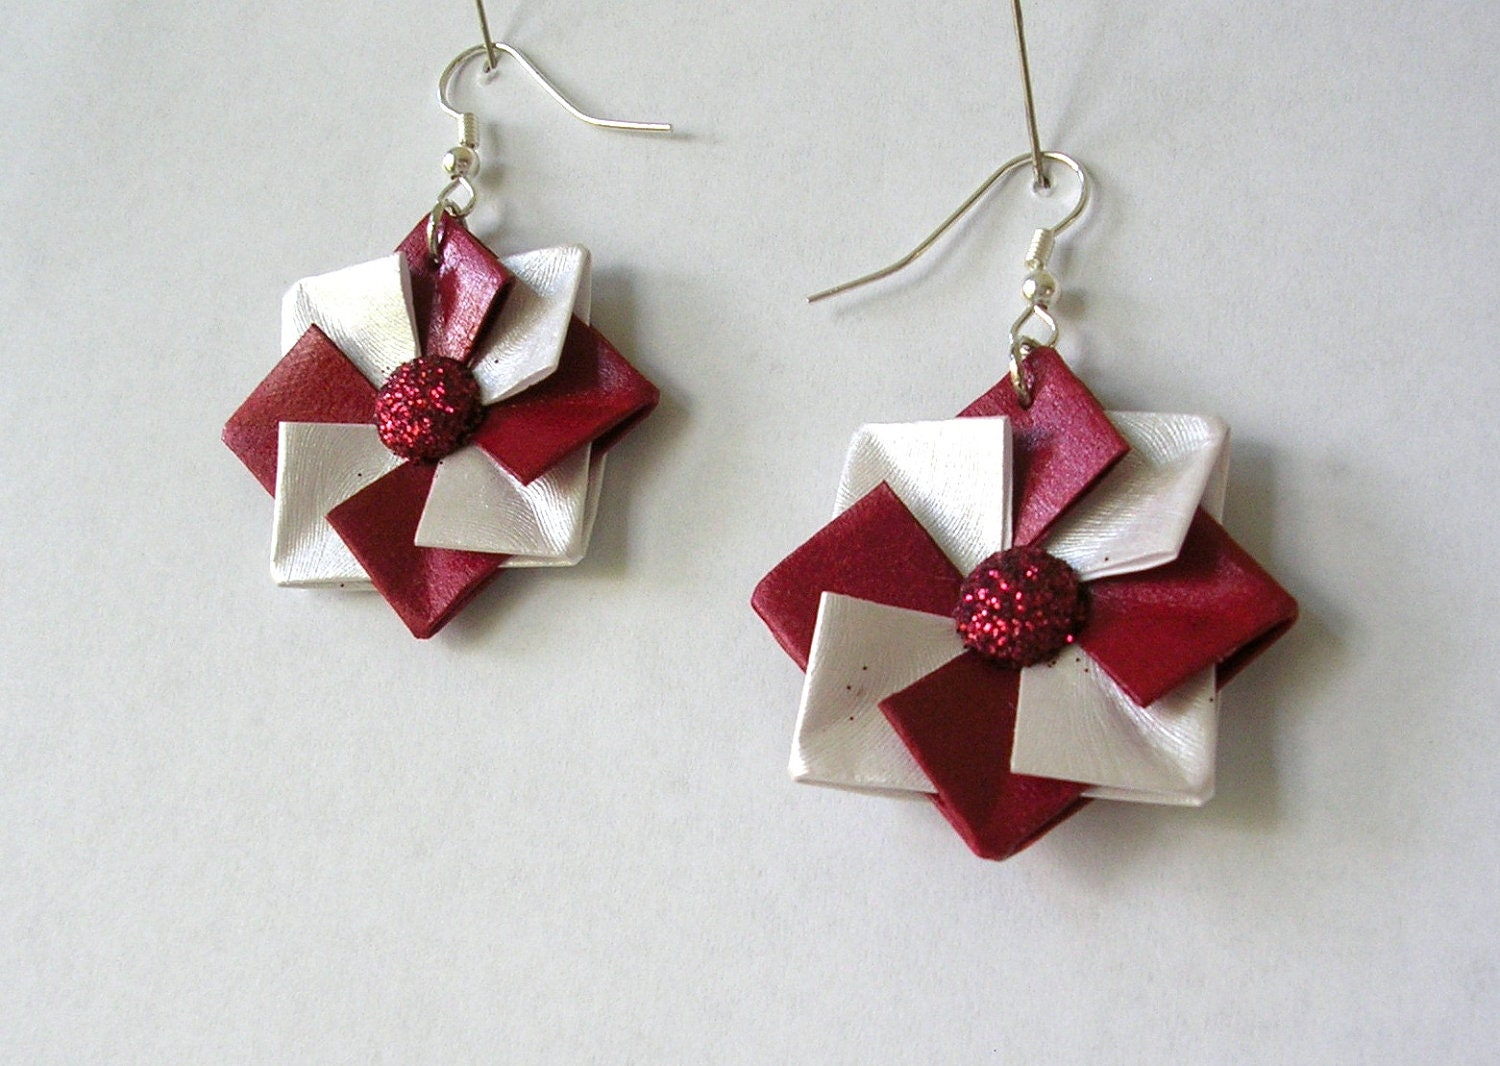 origami earrings origami jewelry red and white paper